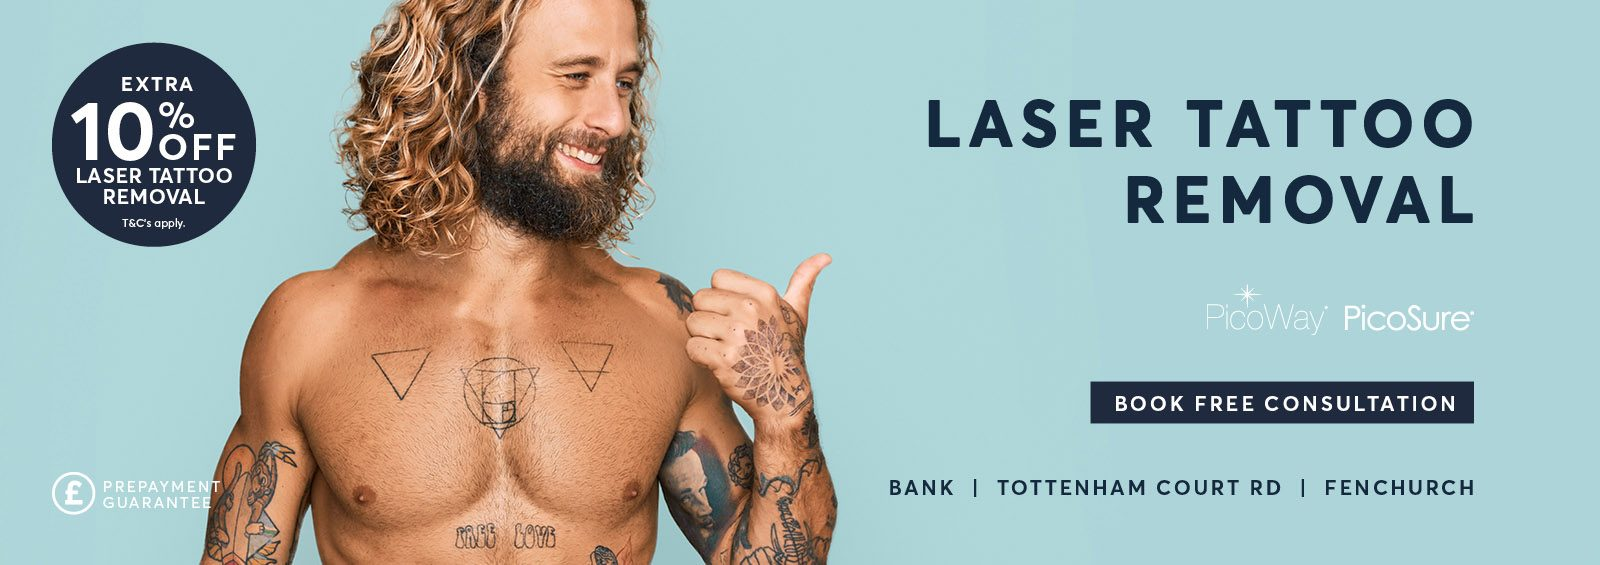 Laser Tattoo Removal discount extra 10 percent